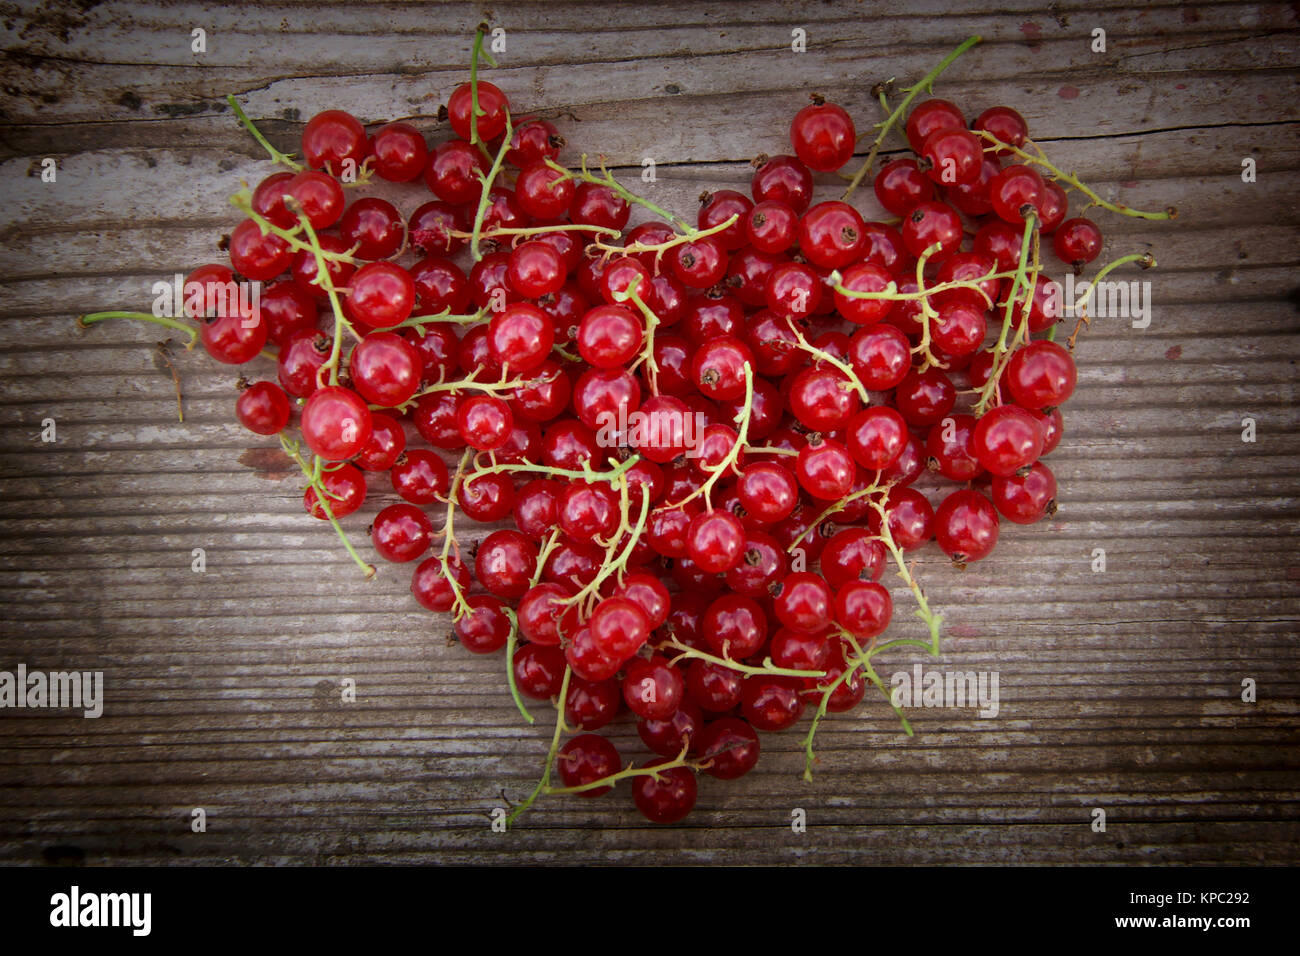 Heart shape from redcurrant. Love theme concept for Valentine's background and love theme. - Stock Image